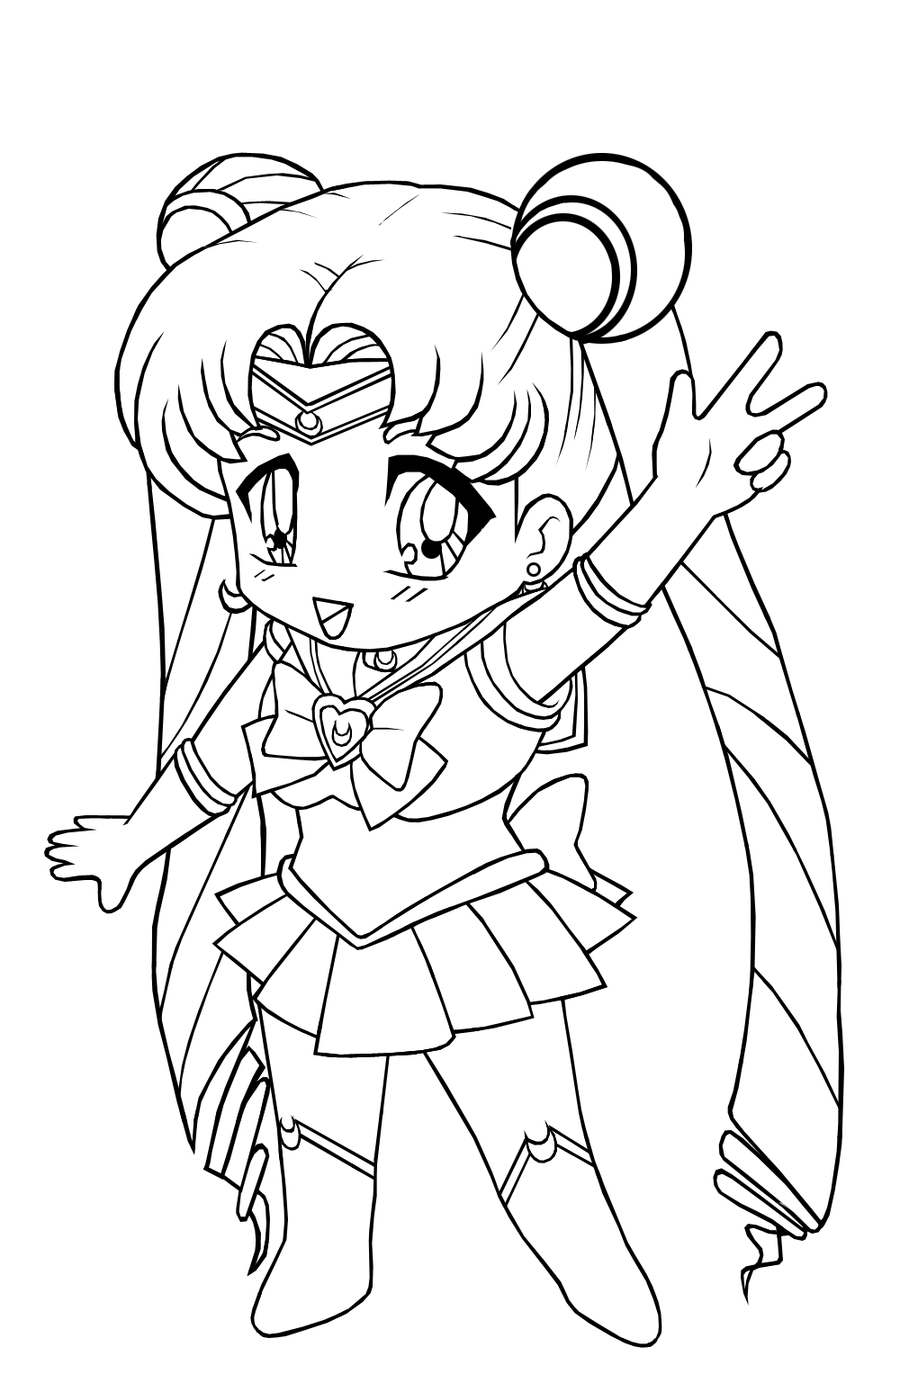 free anime coloring pages sakura with friend coloring pages for kids printable free free coloring anime pages